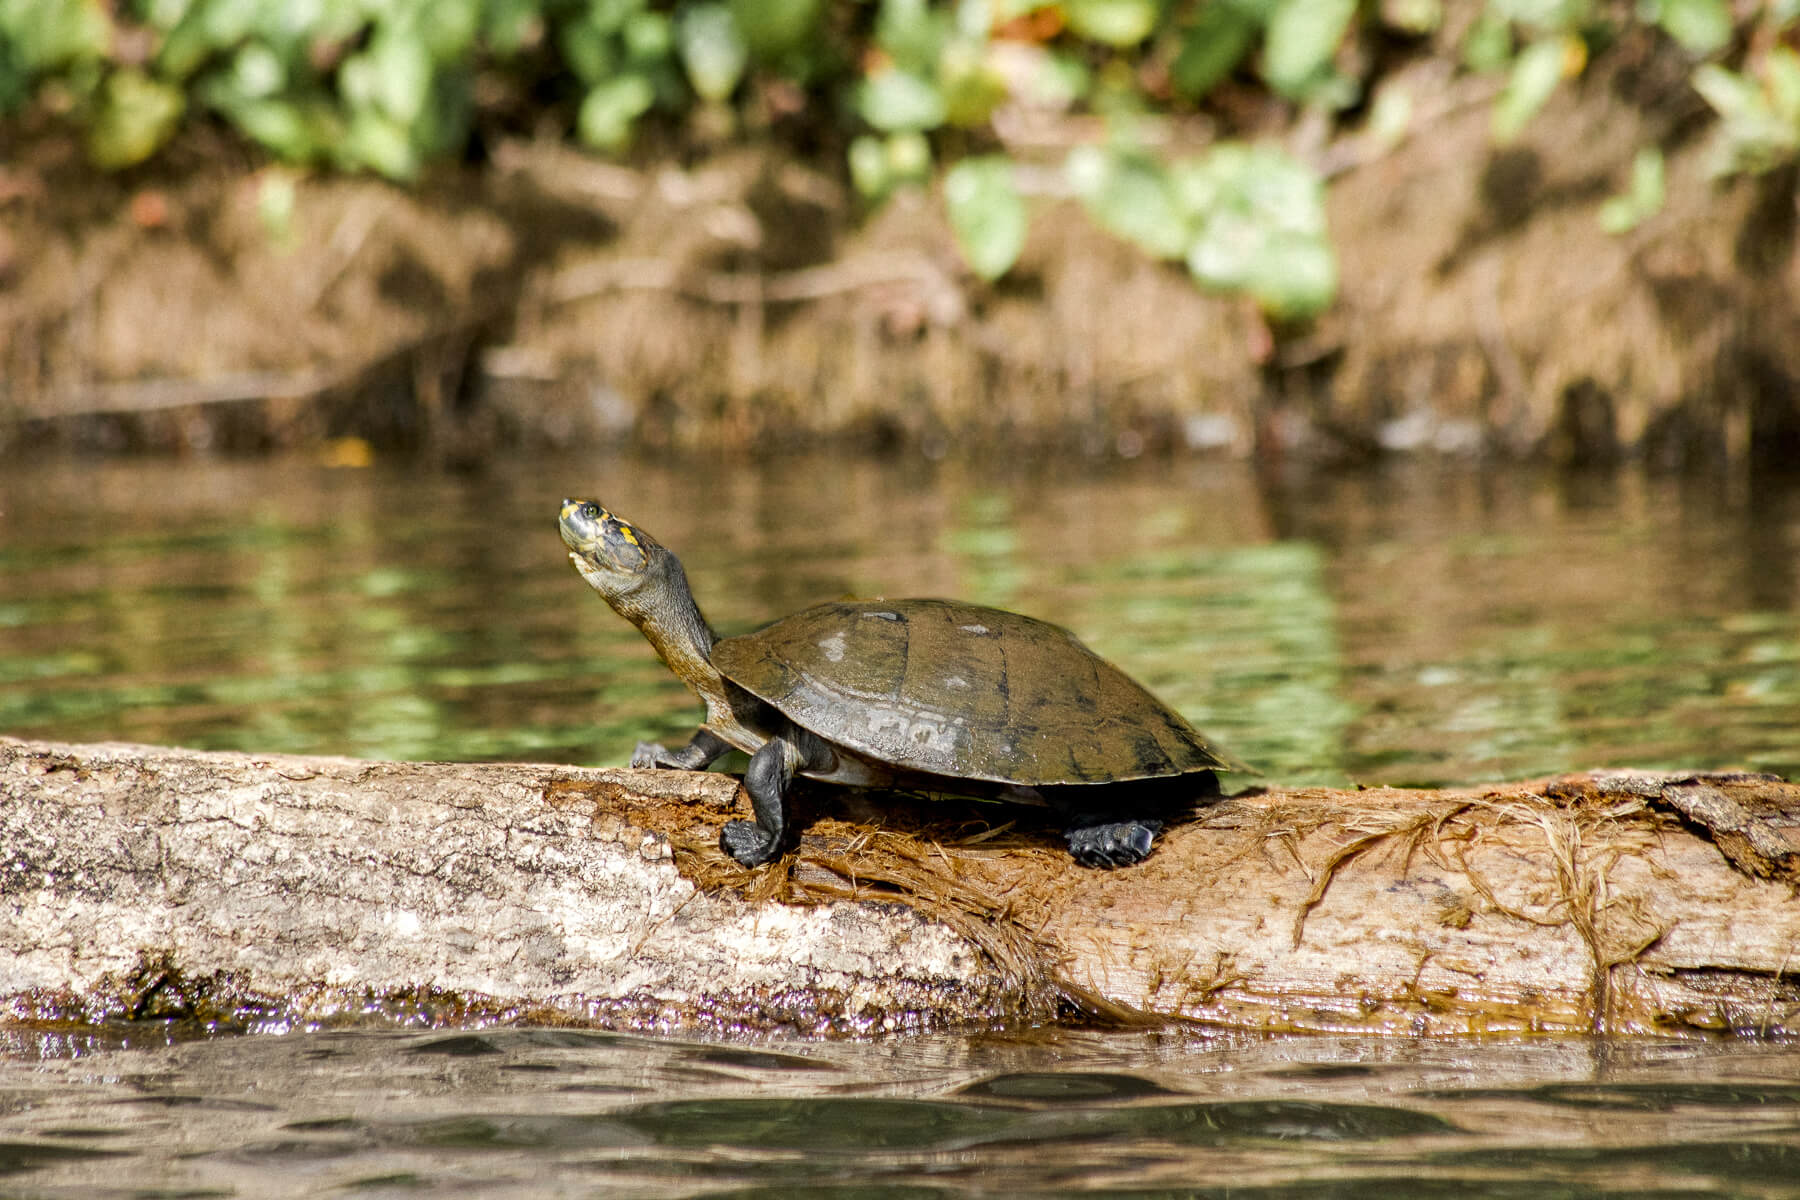 A small turtle sitting on a floating log at Lake Sandoval